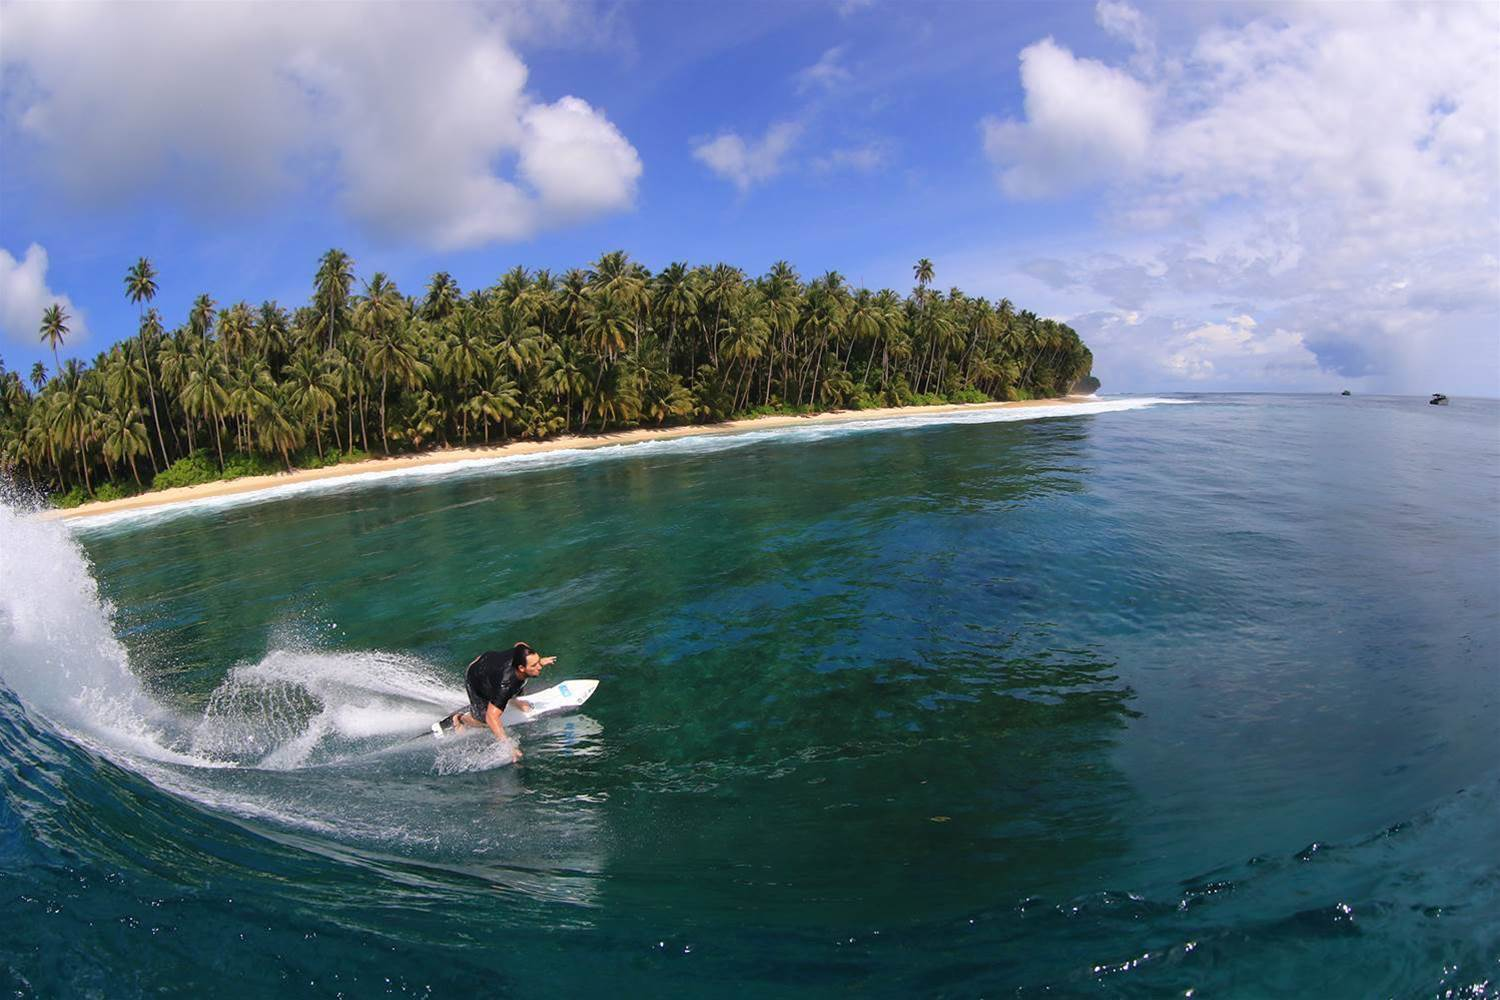 The Telo Surf Report